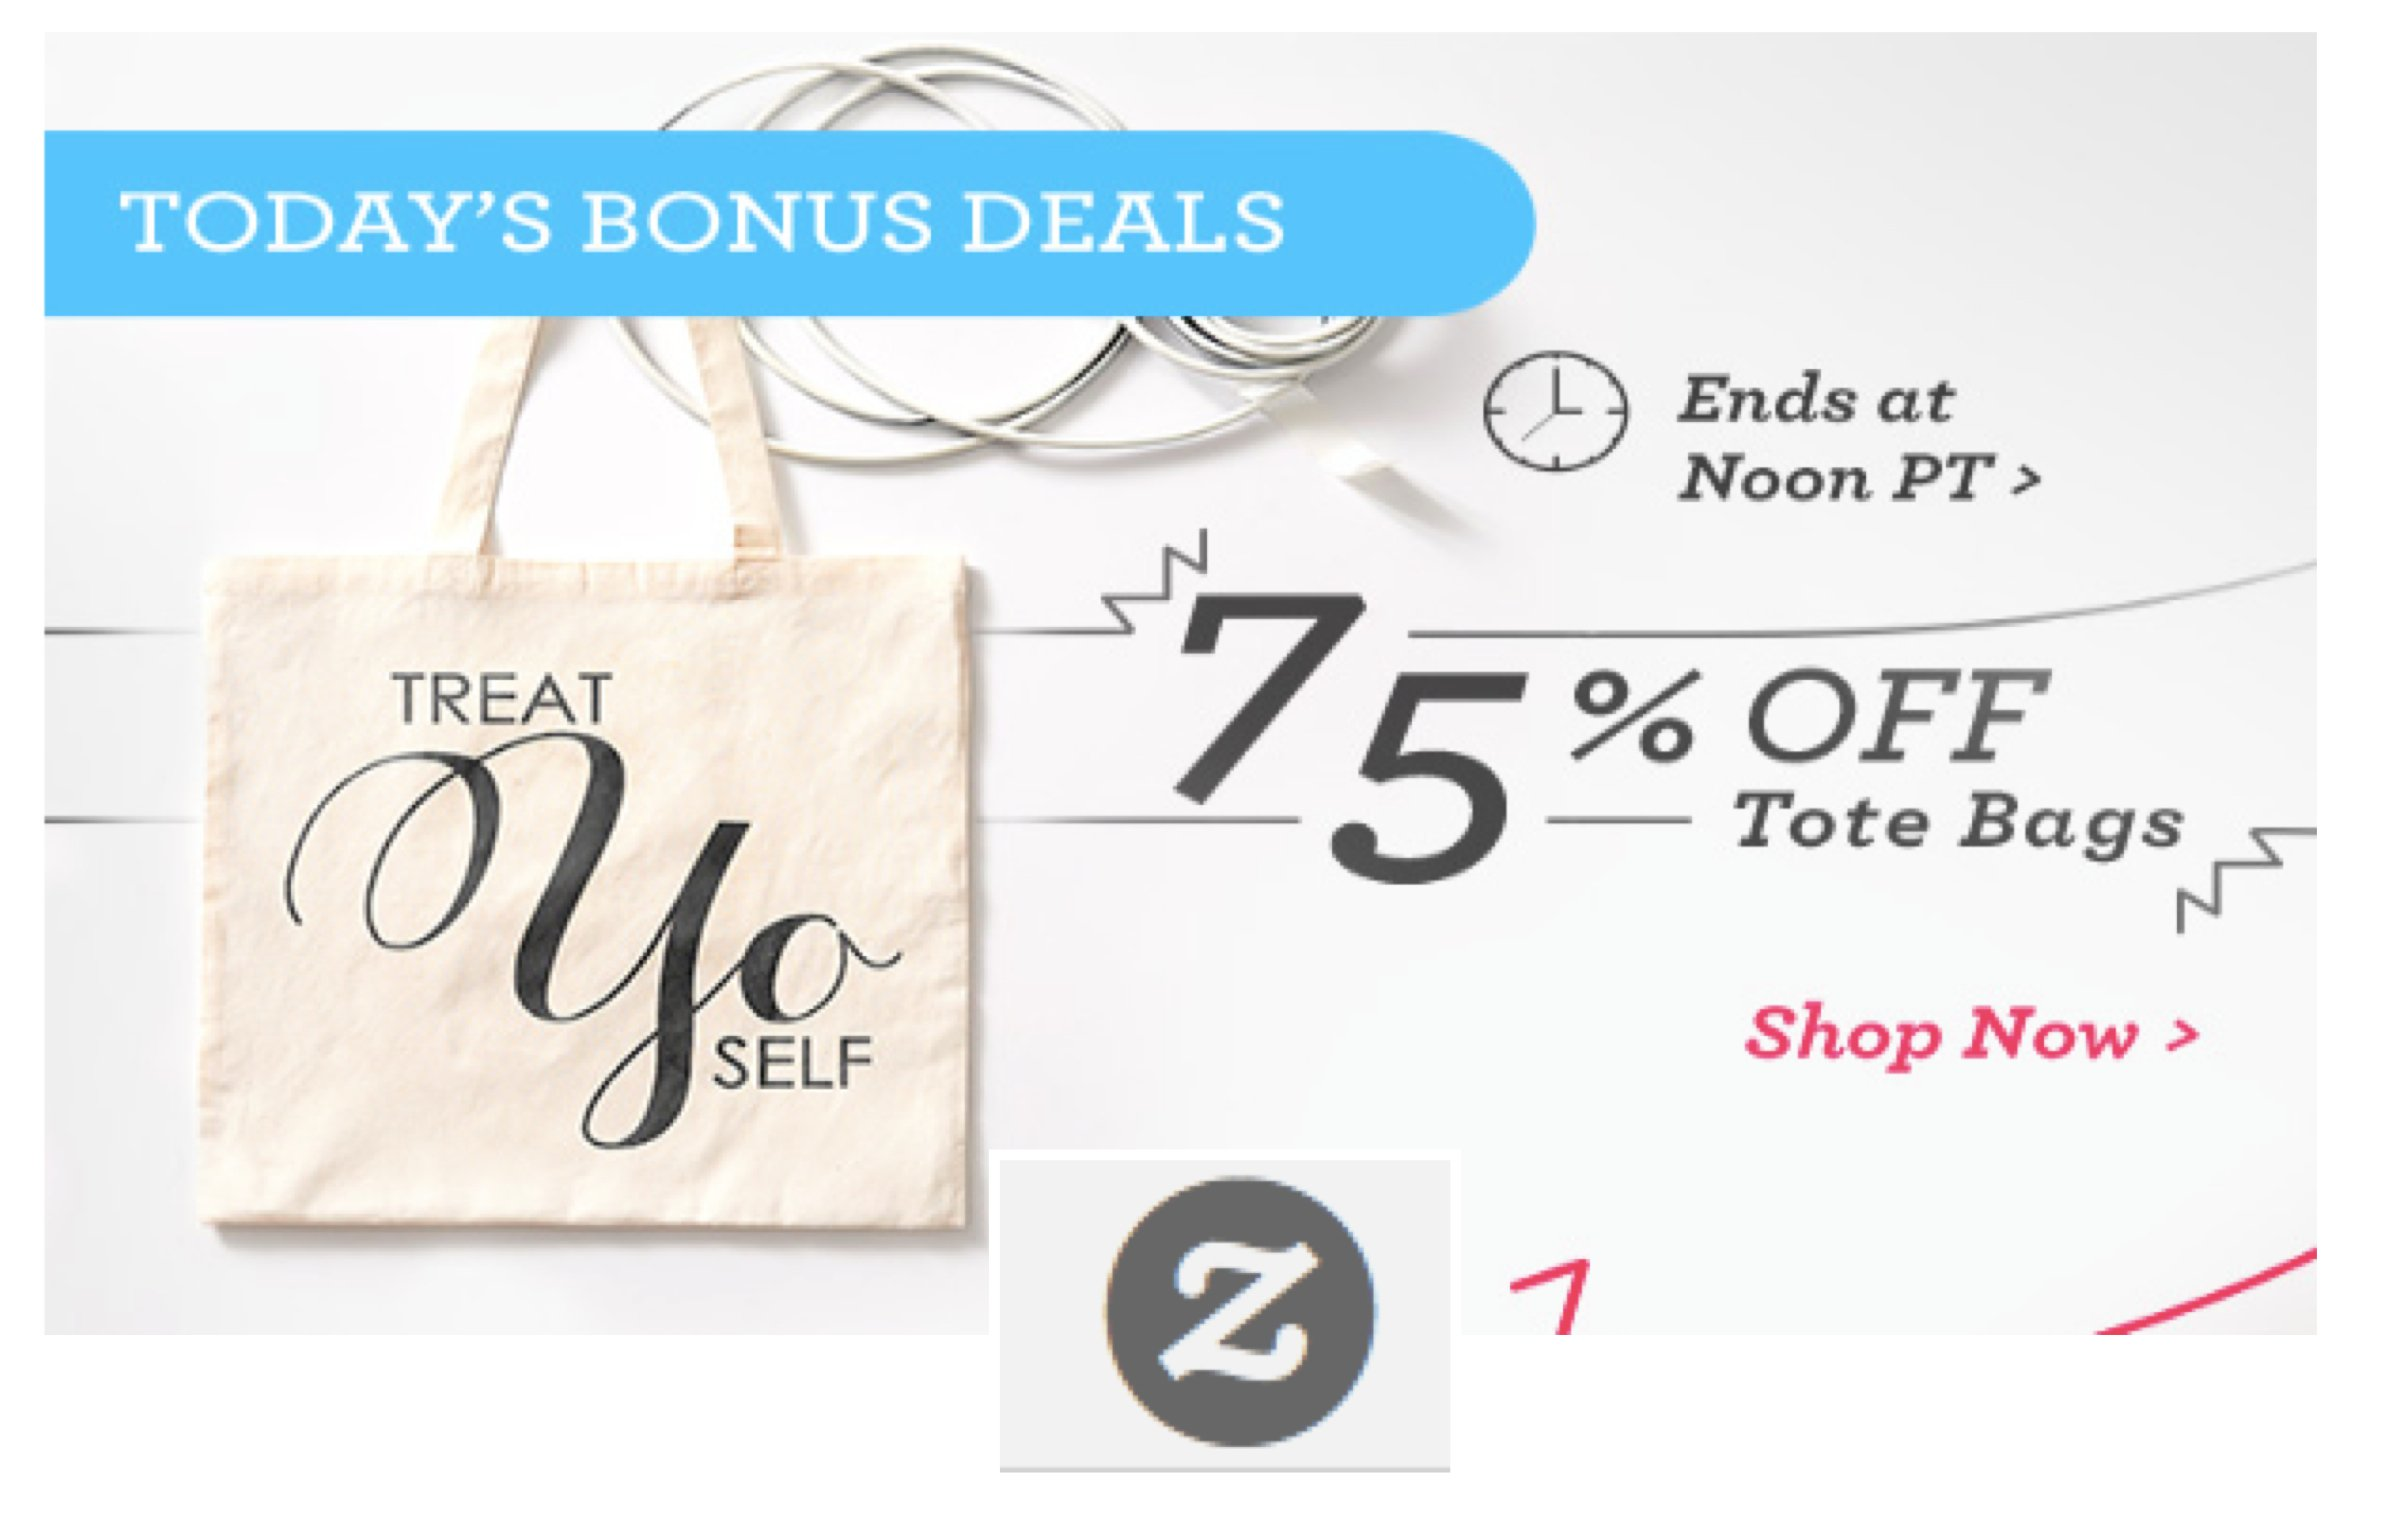 75 OFF Tote Bags